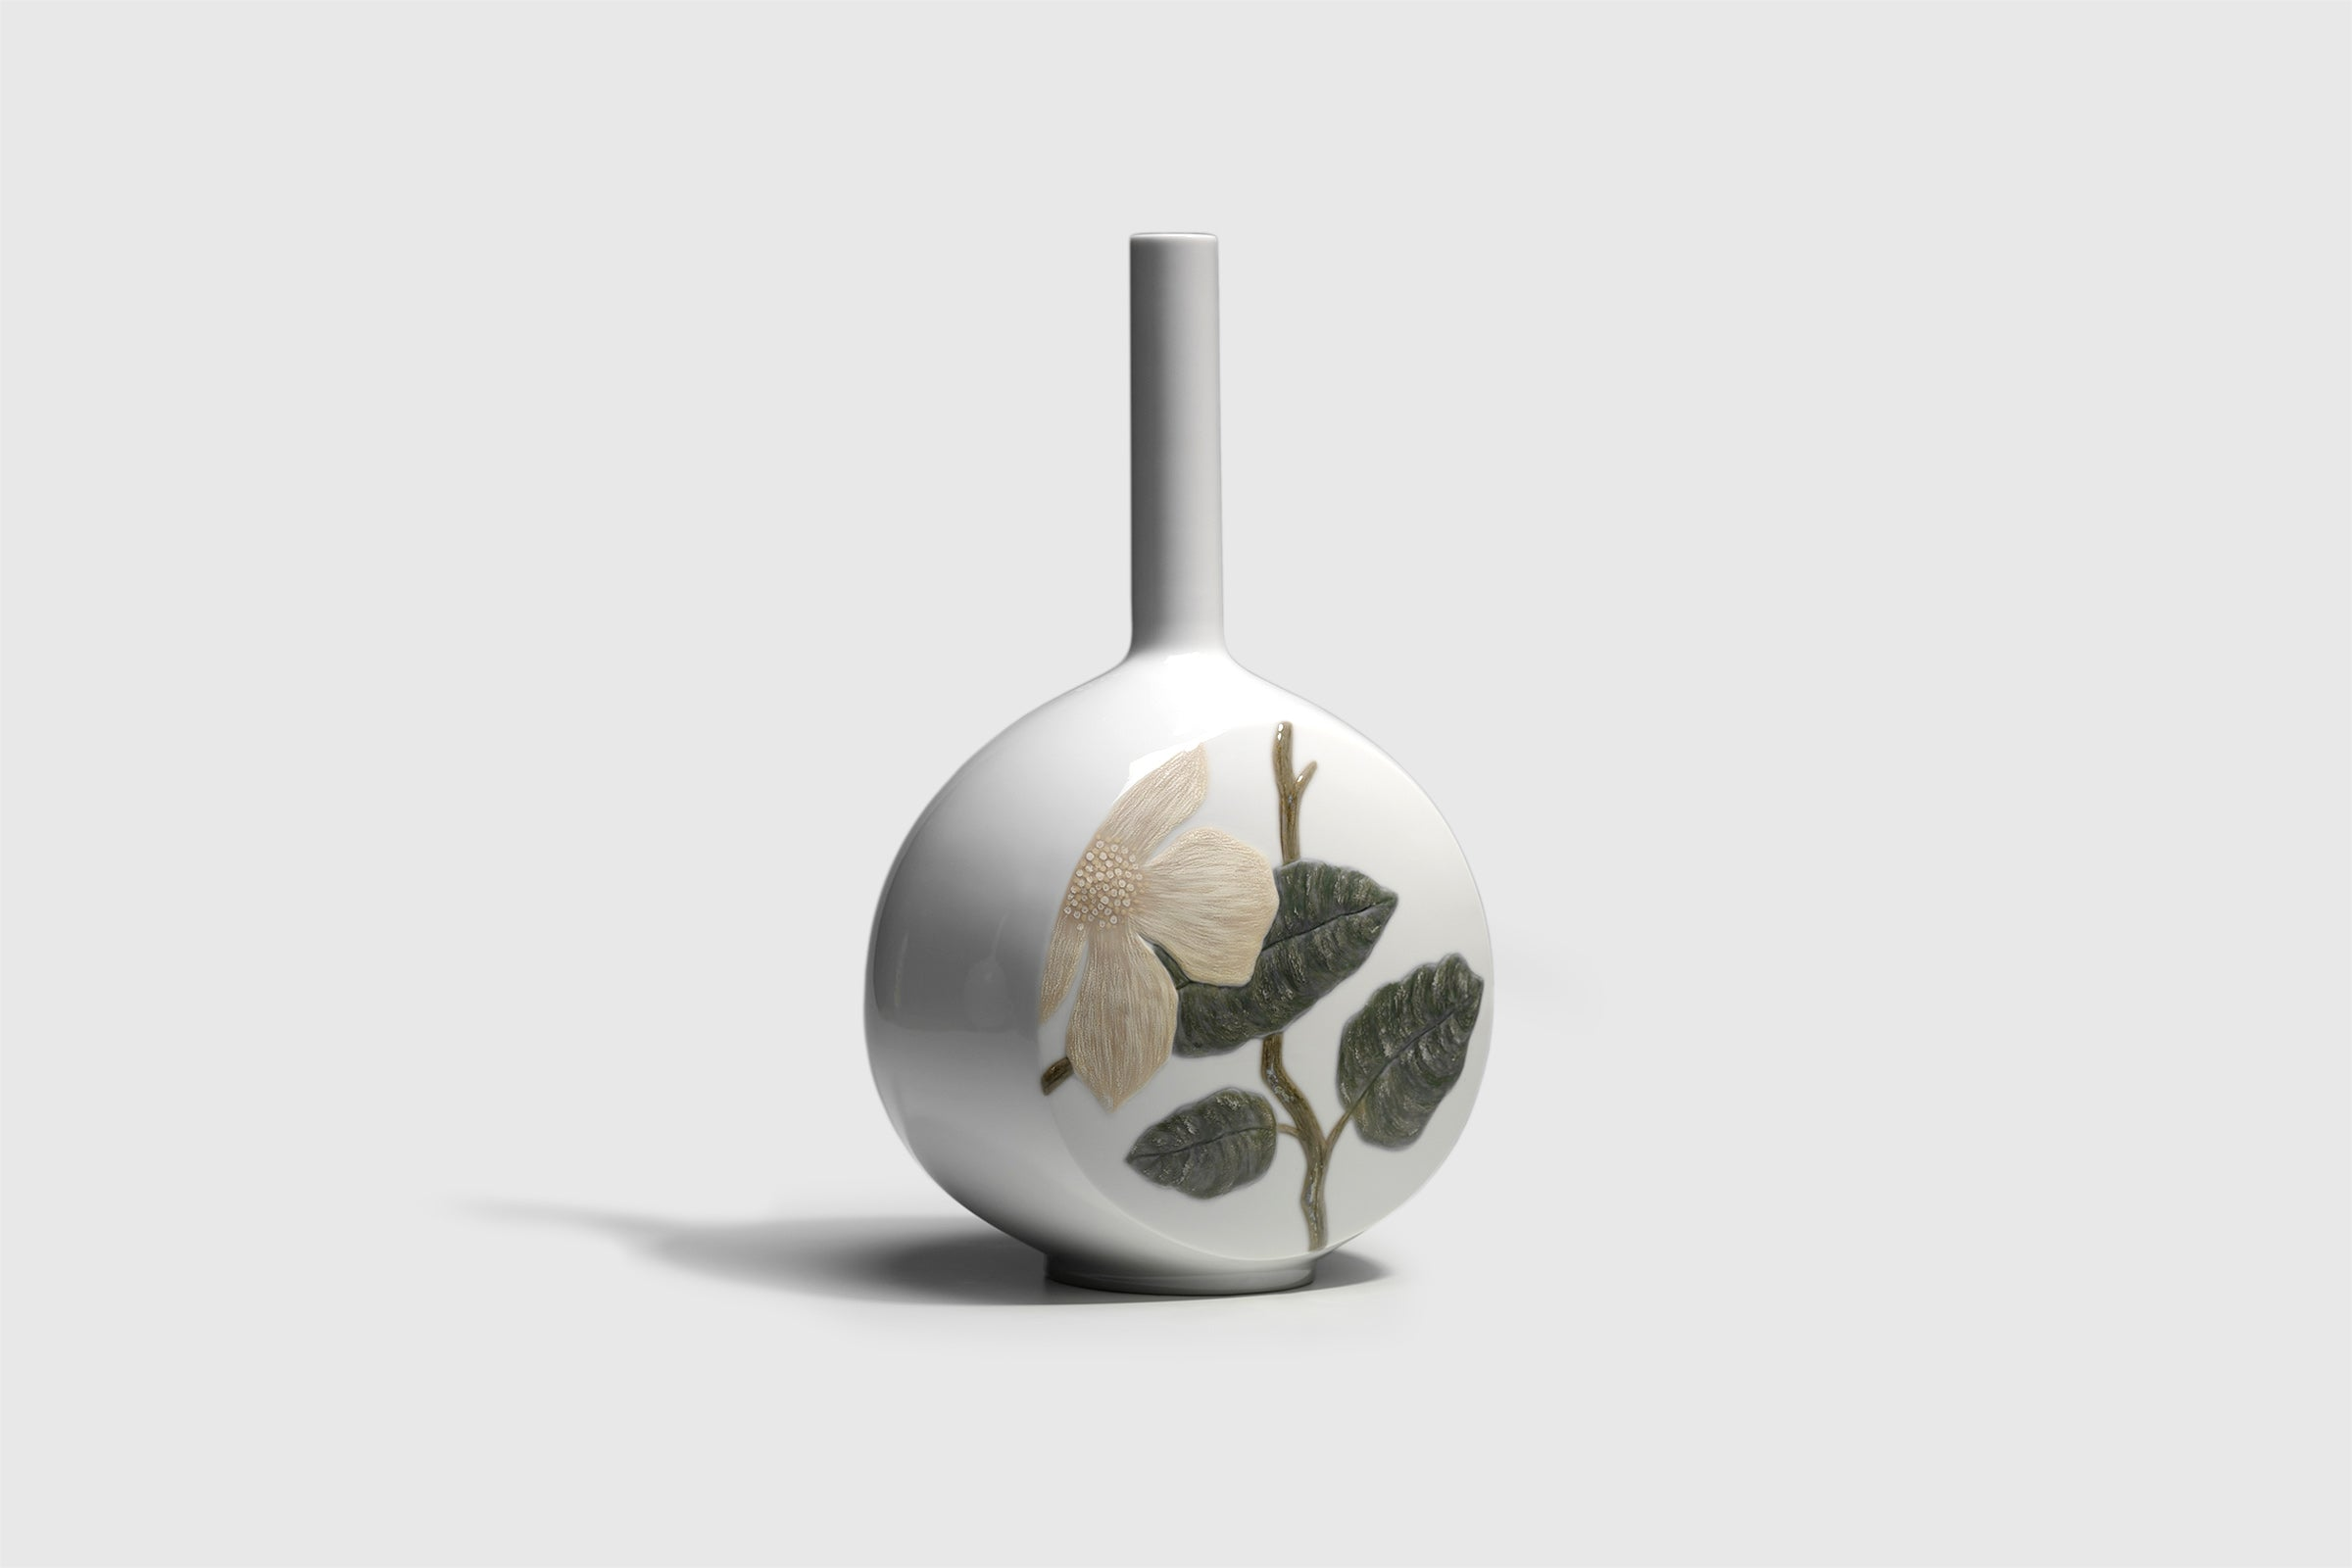 Lladro Canvas Vase Designed by London Based Studio Bodo Sperlein